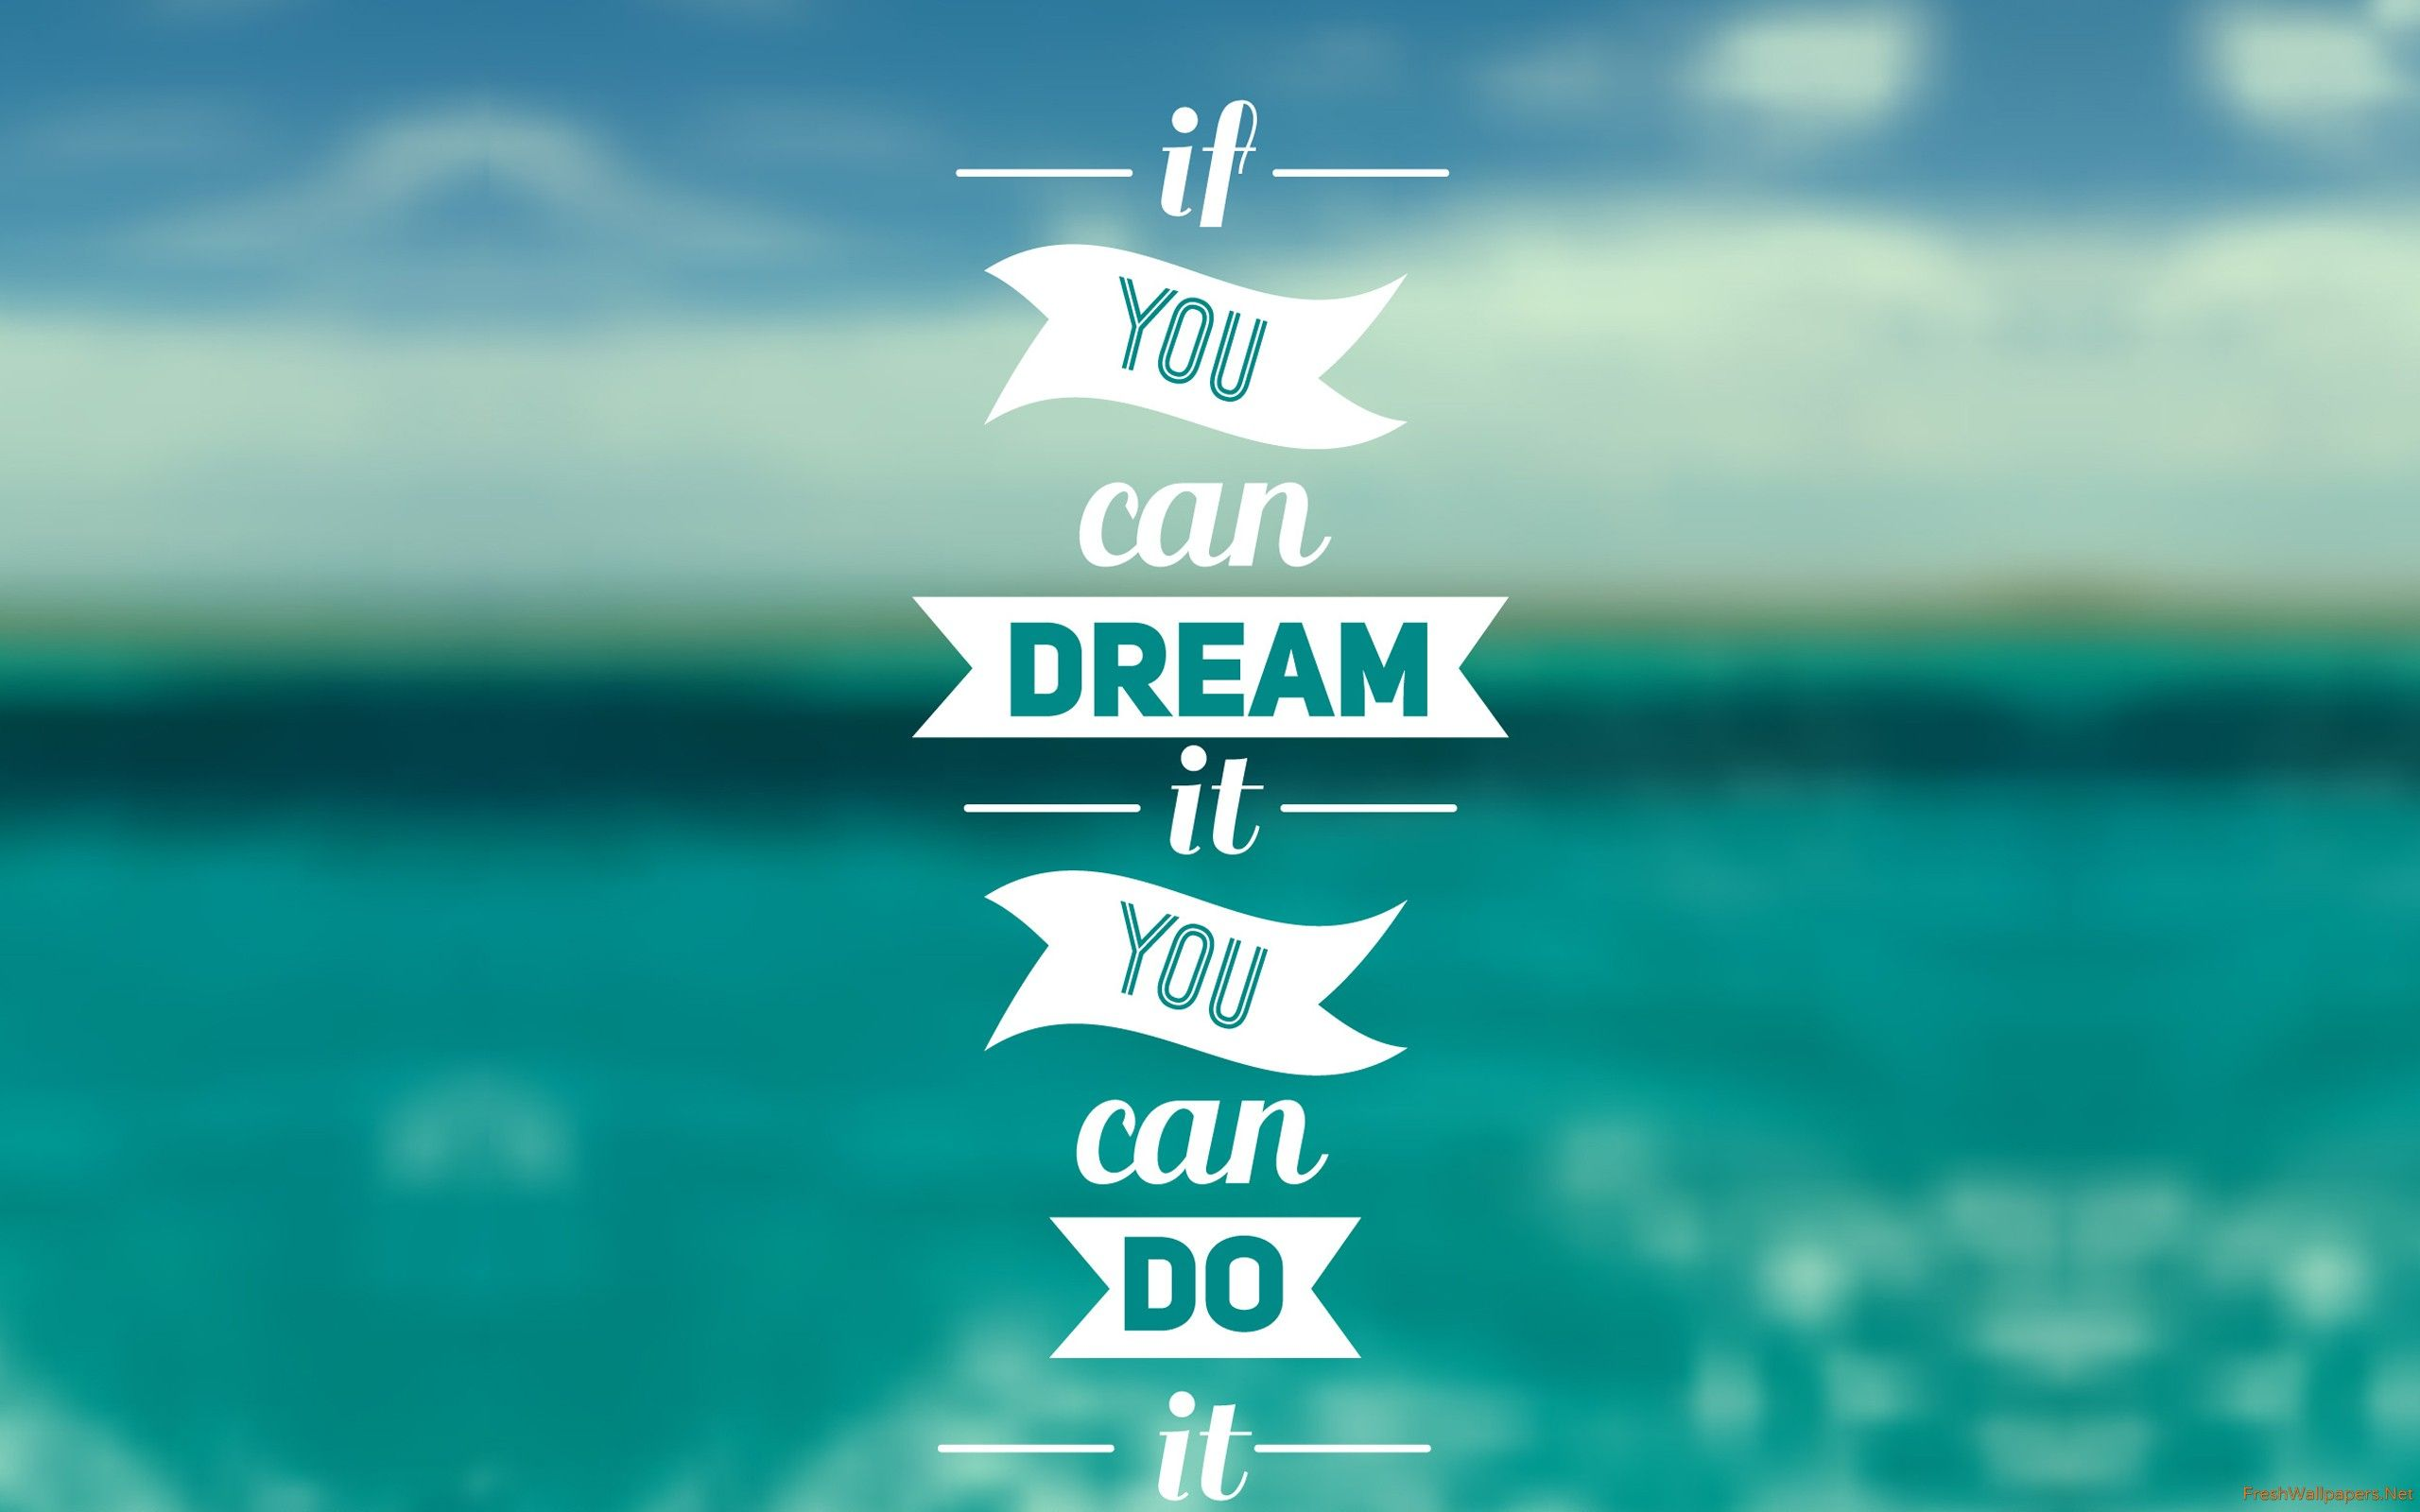 Dreams are nothing unless you chase them. #MondayMotivation